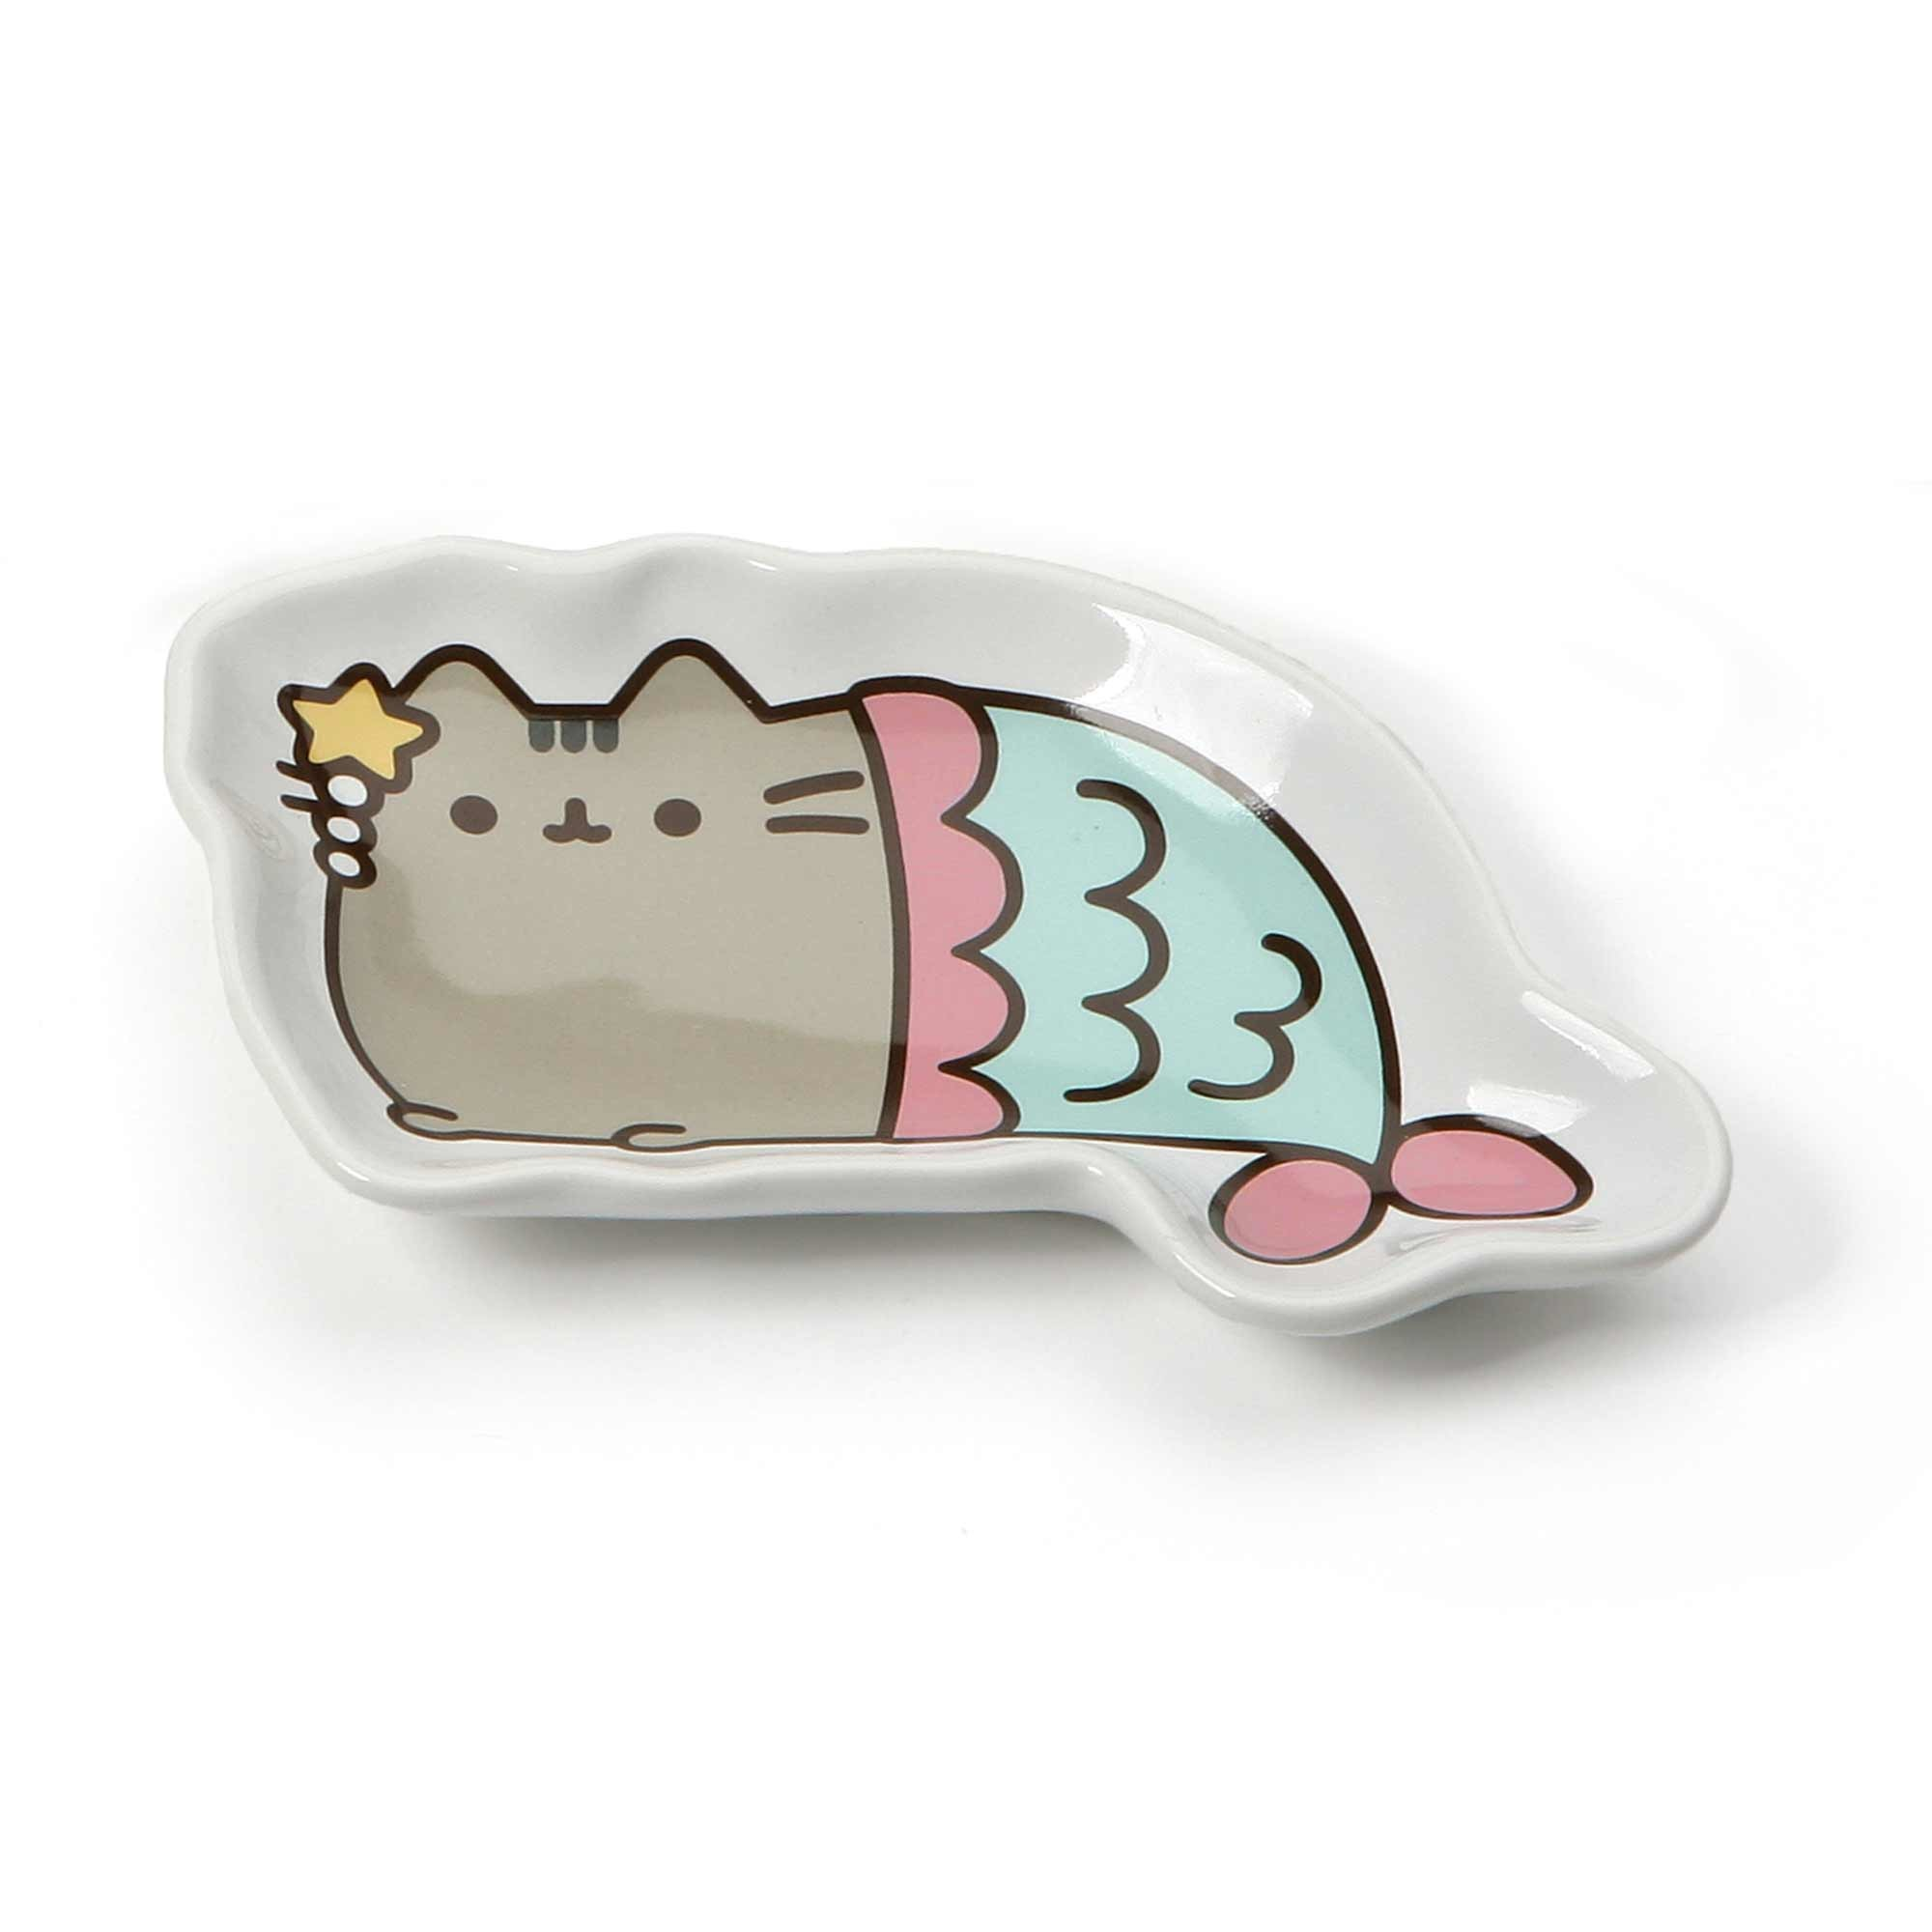 Pusheen Tray Mermaid